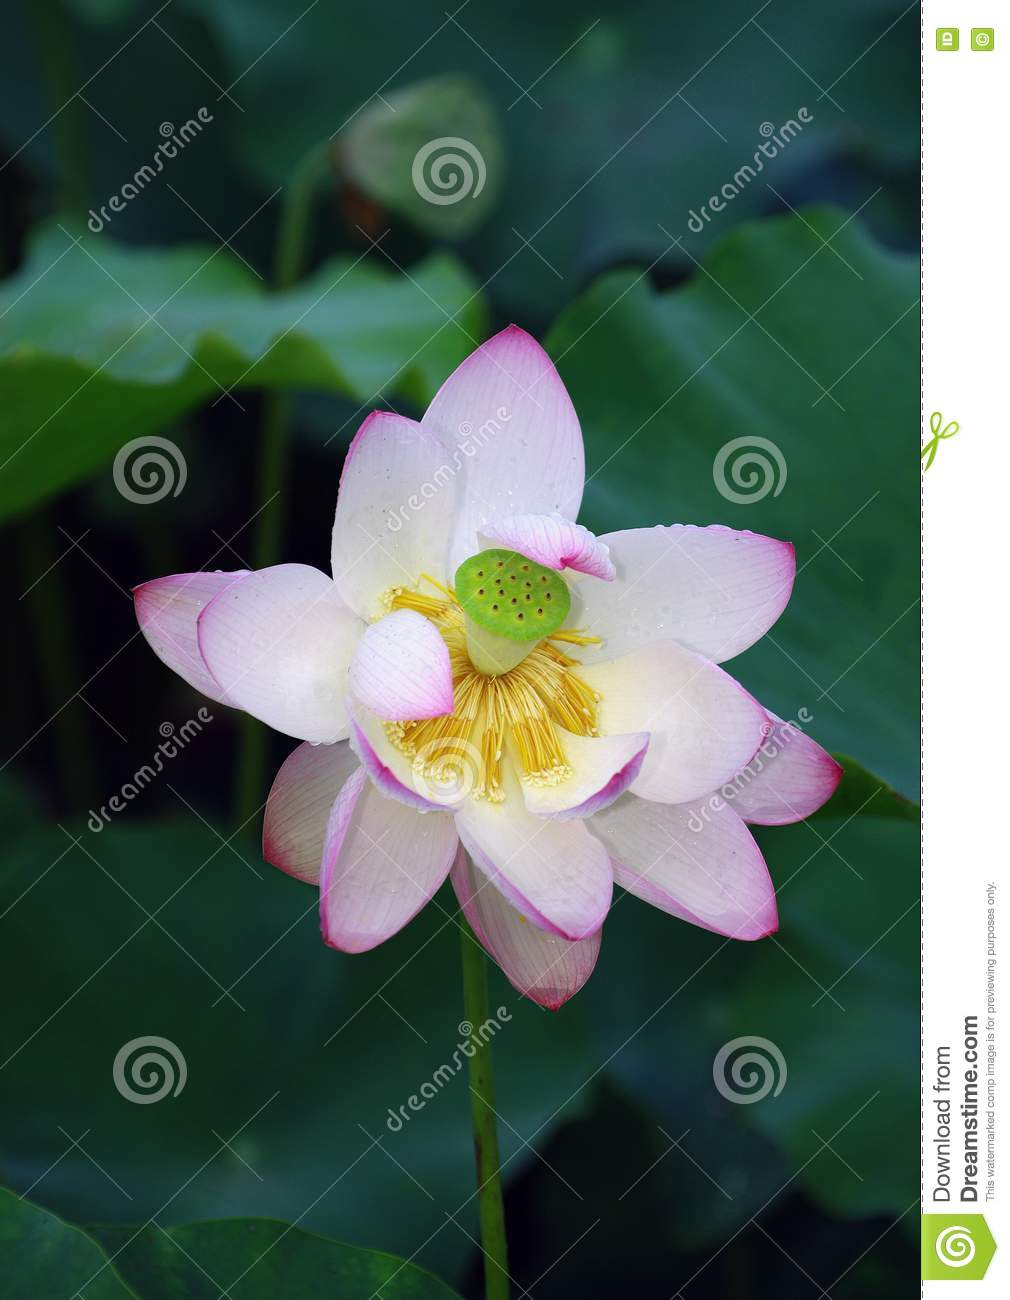 Lotus Flower Picture Image 15277577